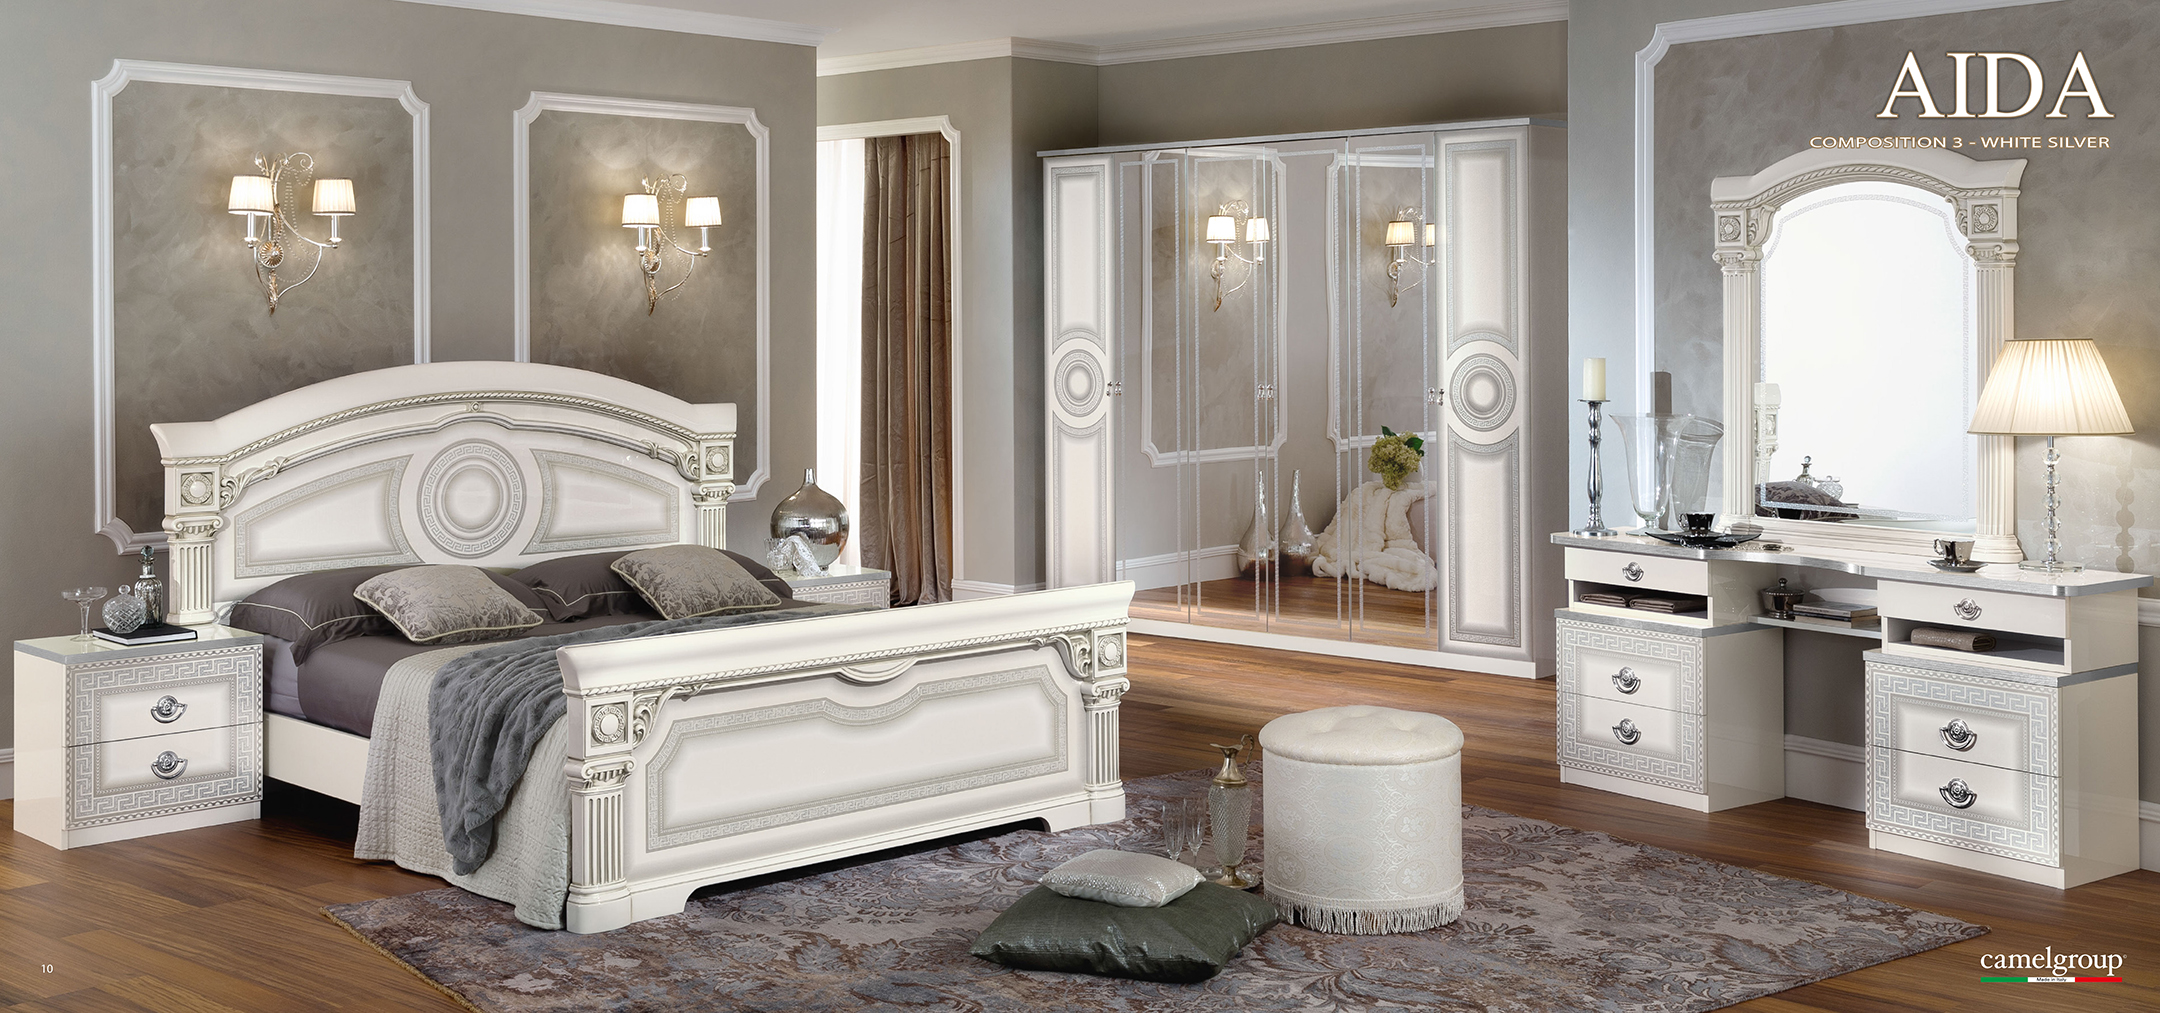 Aida White W Silver Camelgroup Italy More Images And Dimensions Bed